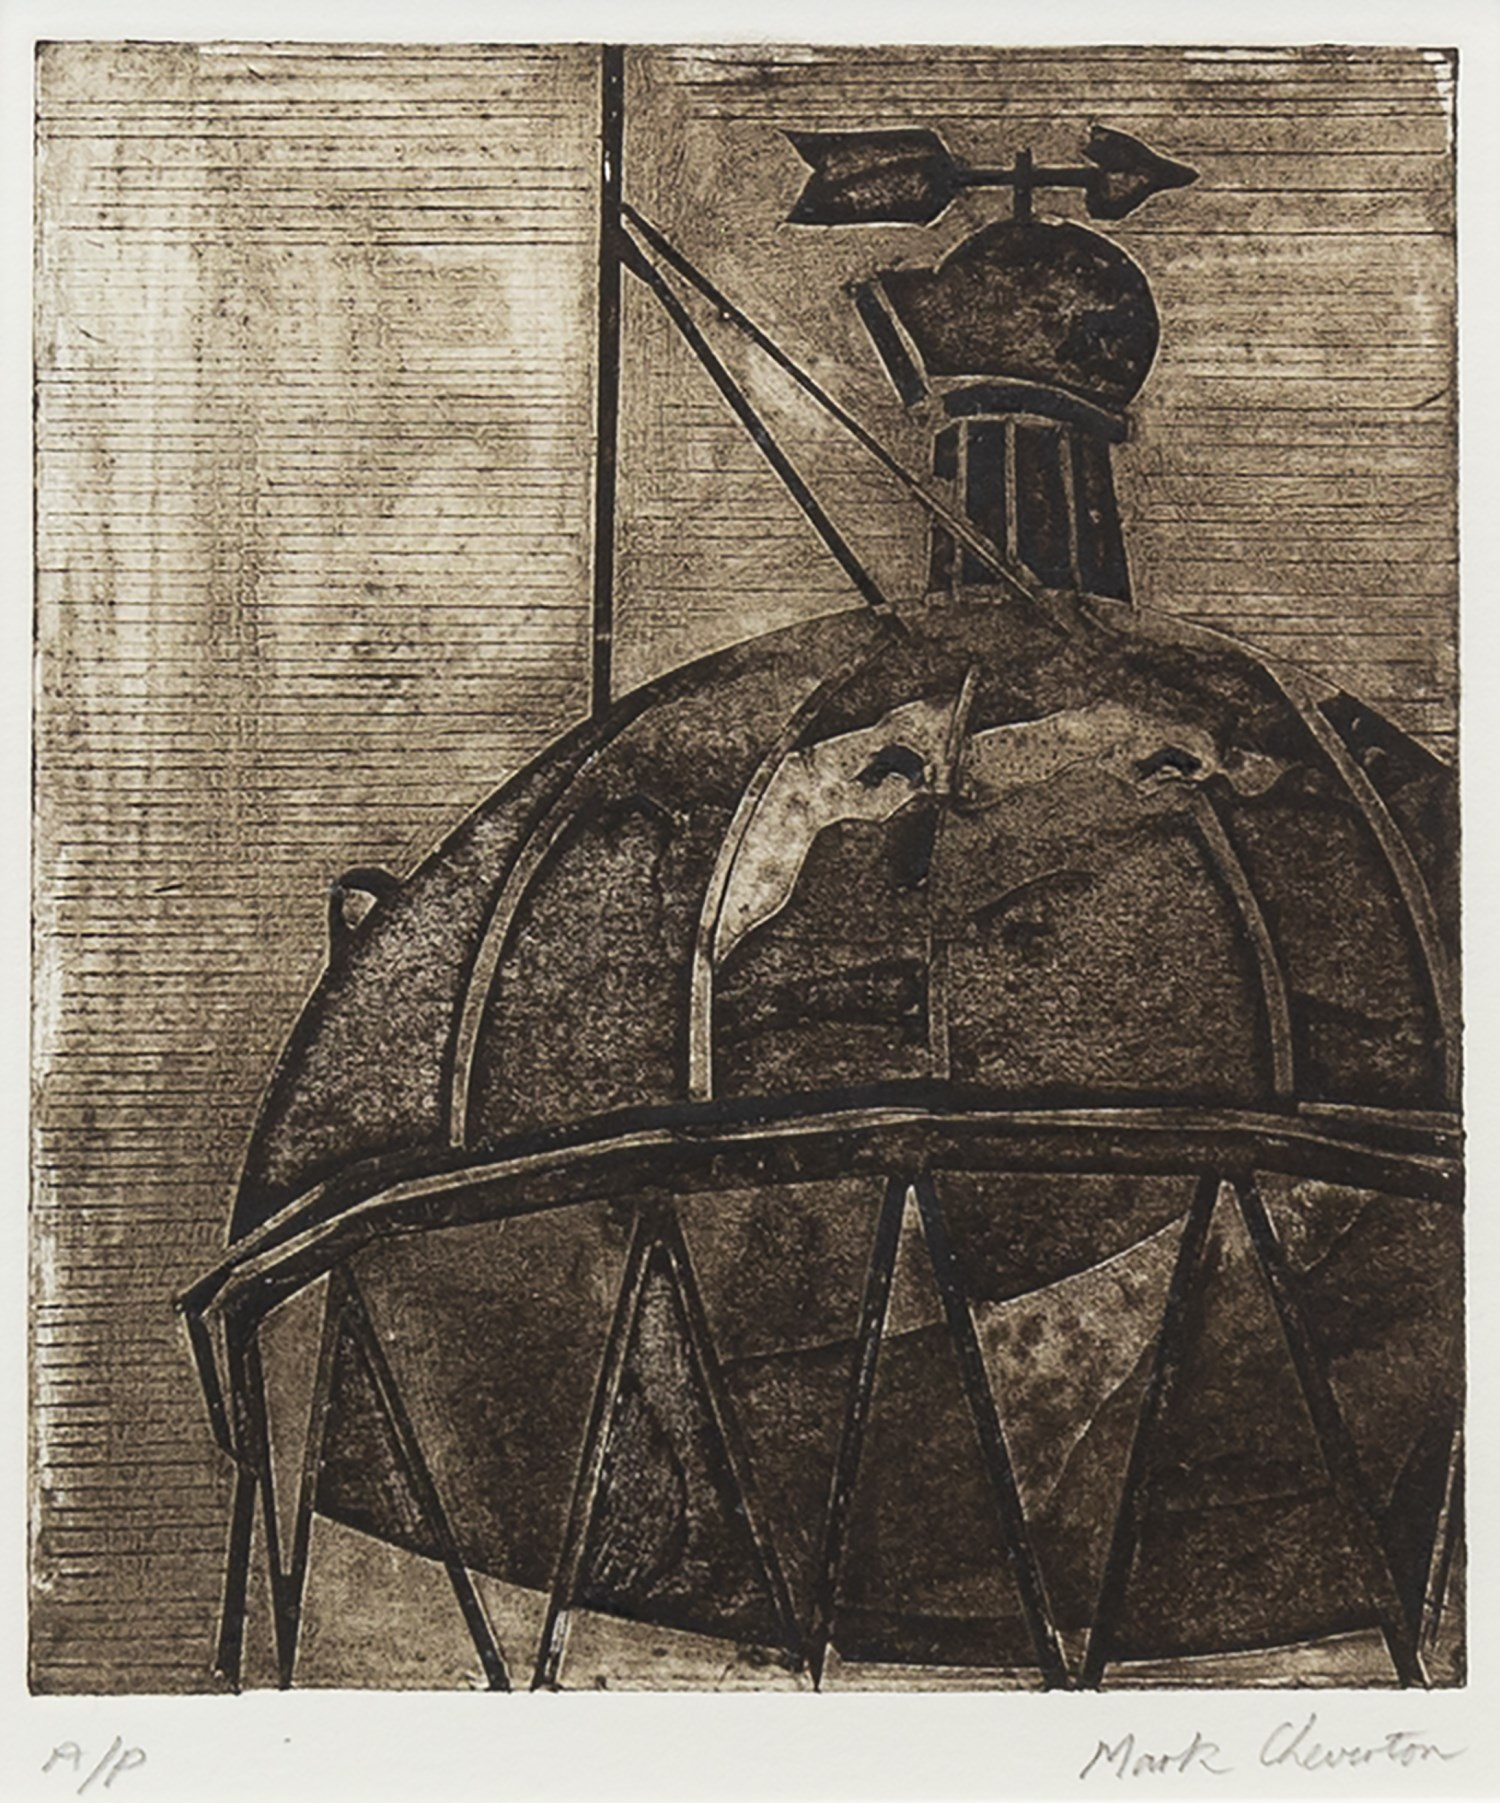 Lot 95 - MULL AND GALLOWAY LIGHTHOUSE, AN ARTIST'S PROOF ETCHING BY MARK CHEVERTON